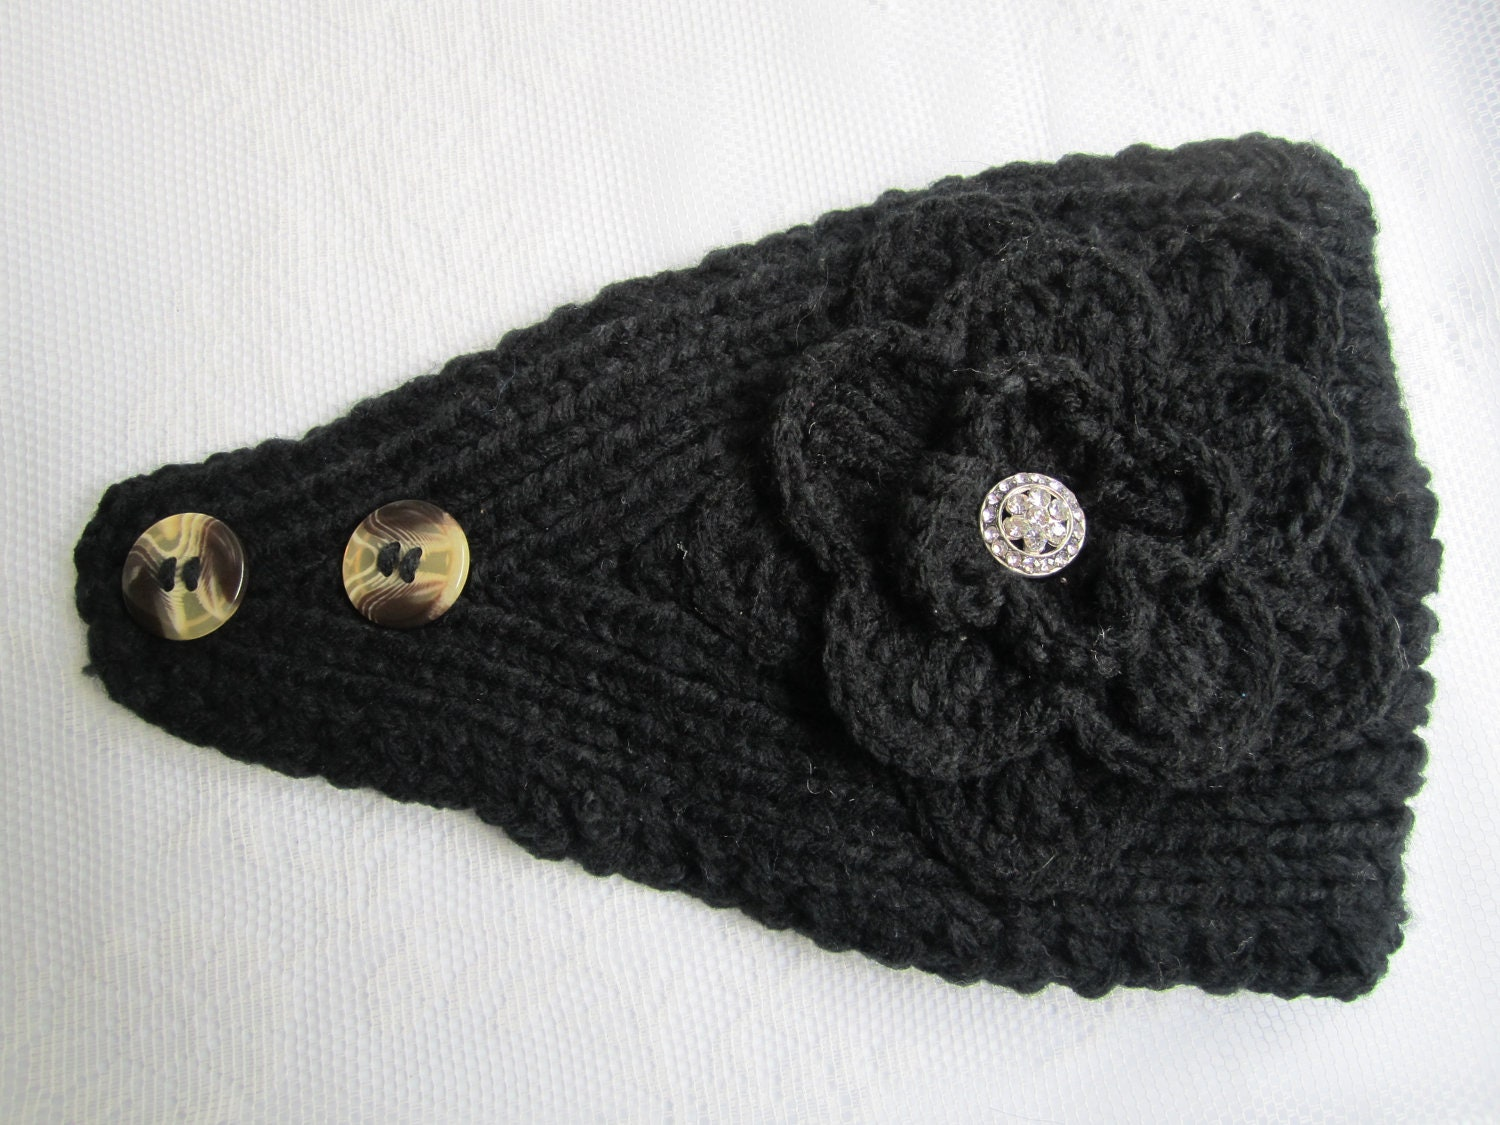 Free Crochet Patterns For Headbands With Button Closure : Crochet Headband Pattern With Button Closure www ...